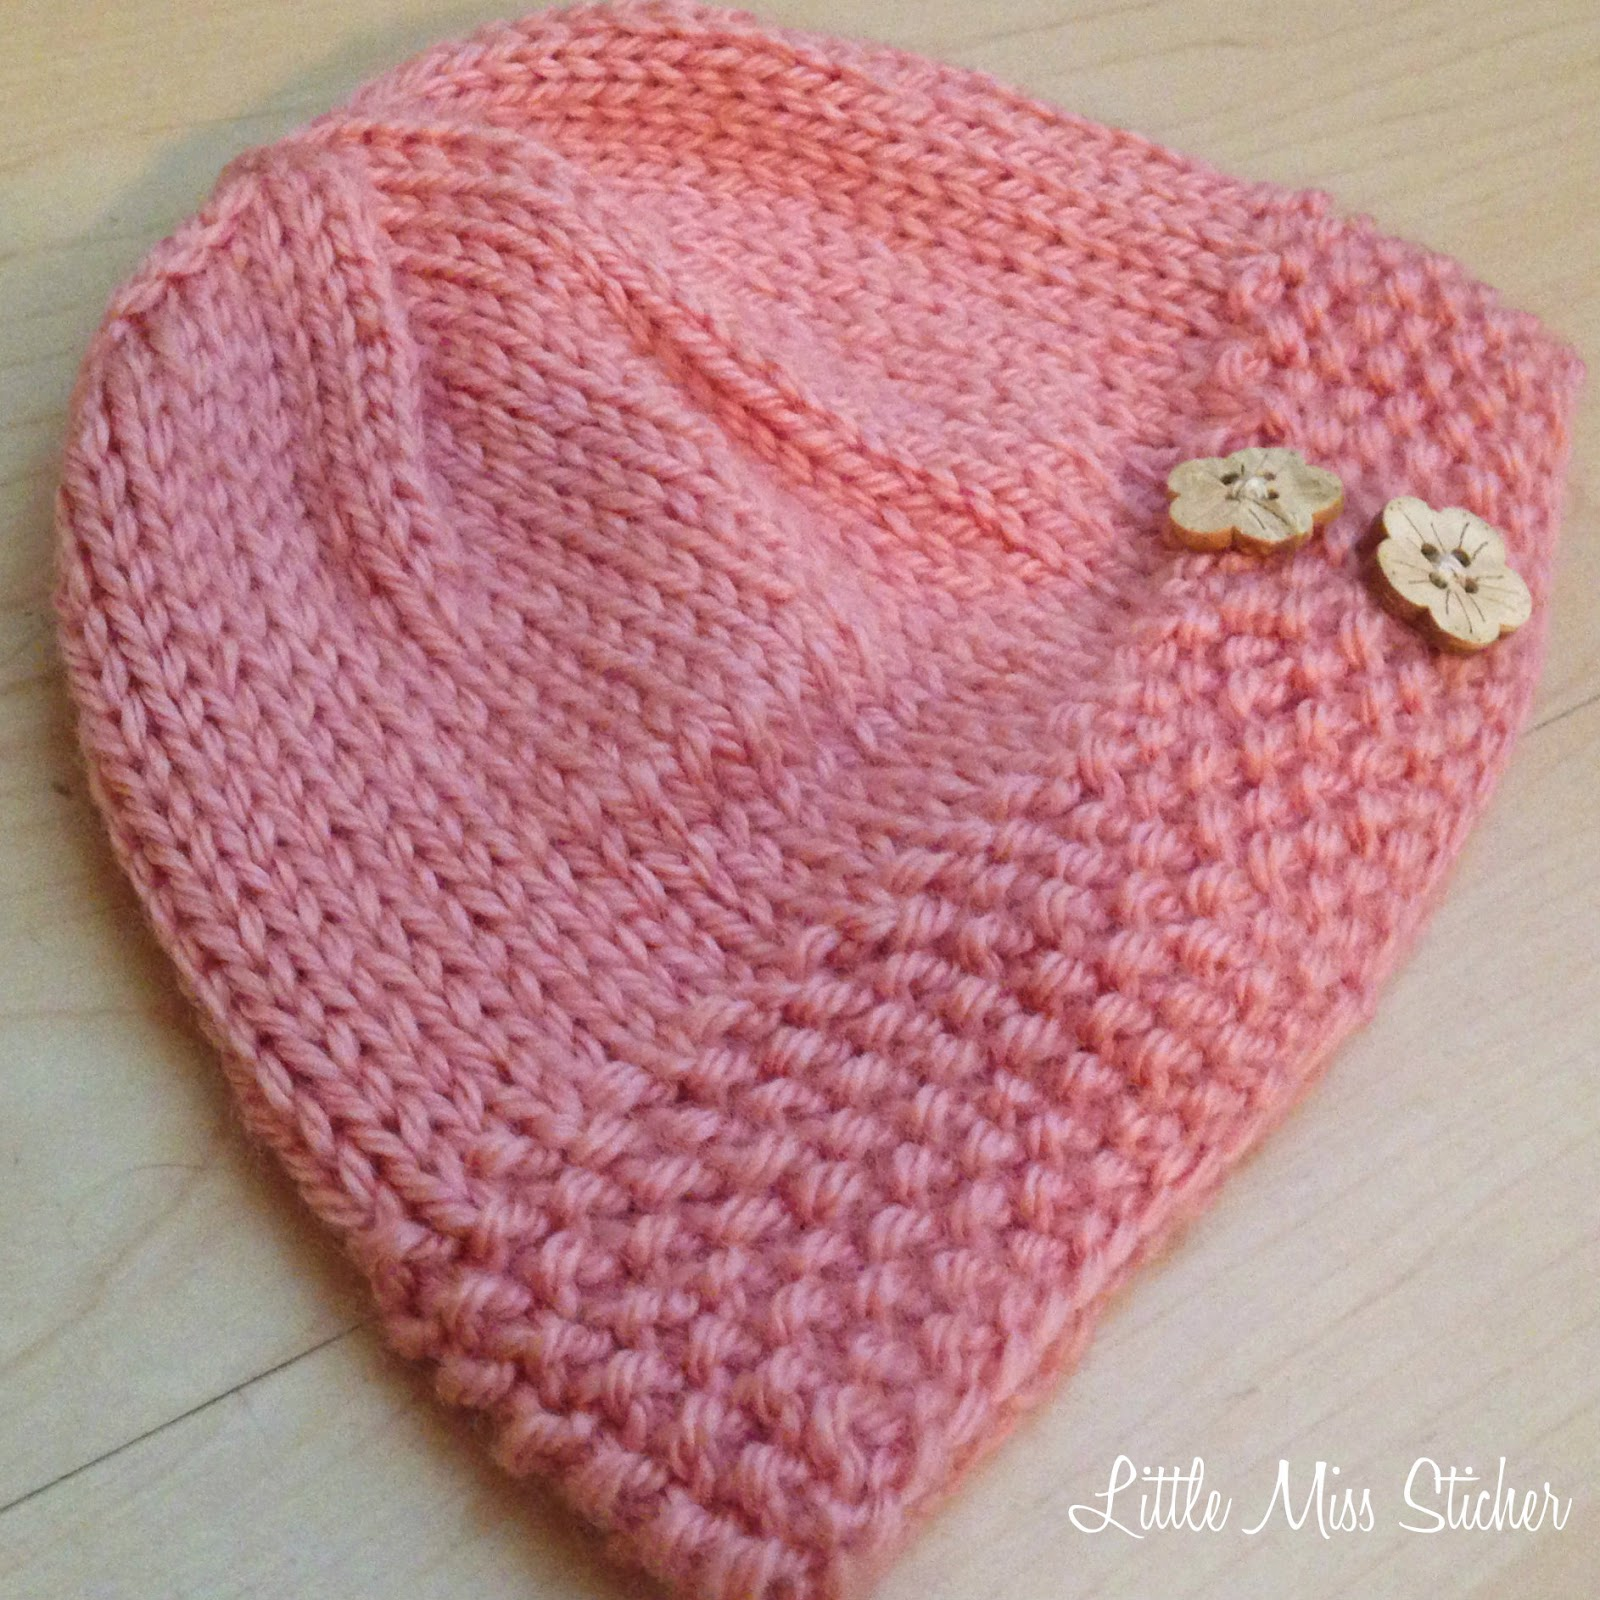 Knit Pattern For Baby Hat : Little Miss Stitcher: Bitty Beanie Free Knit Pattern